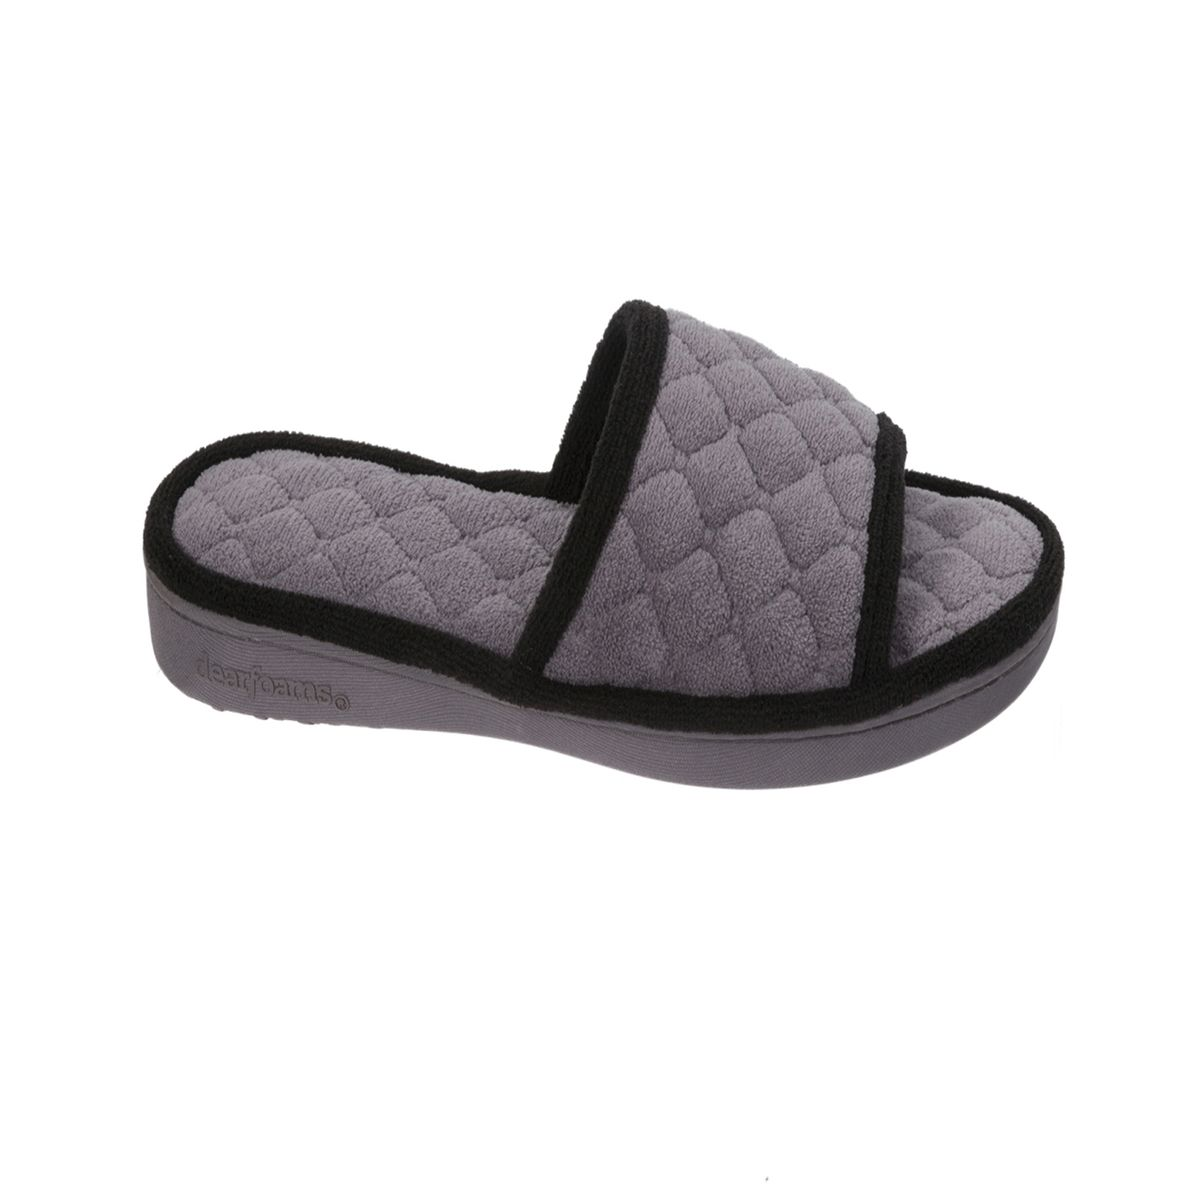 Dearfoams Quilted Terry Grey Excalibur Slide